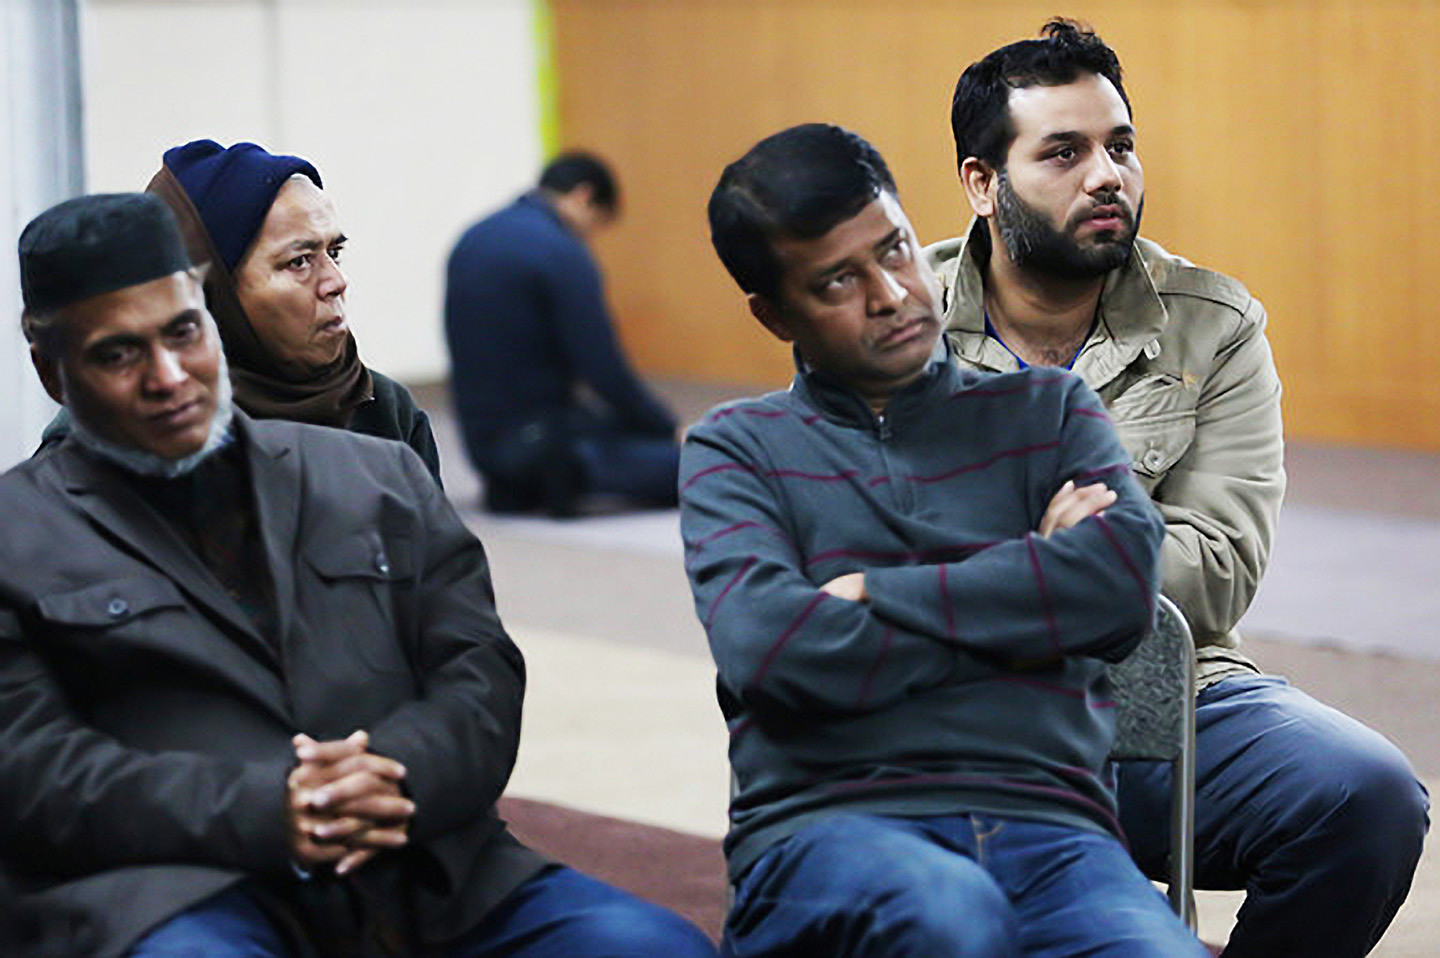 People gathered at the Arafa Islamic Center on Monday to discuss Donald J. Trump's statements advocating that Muslims be barred from entering the United States. Credit Kirsten Luce for The New York Times